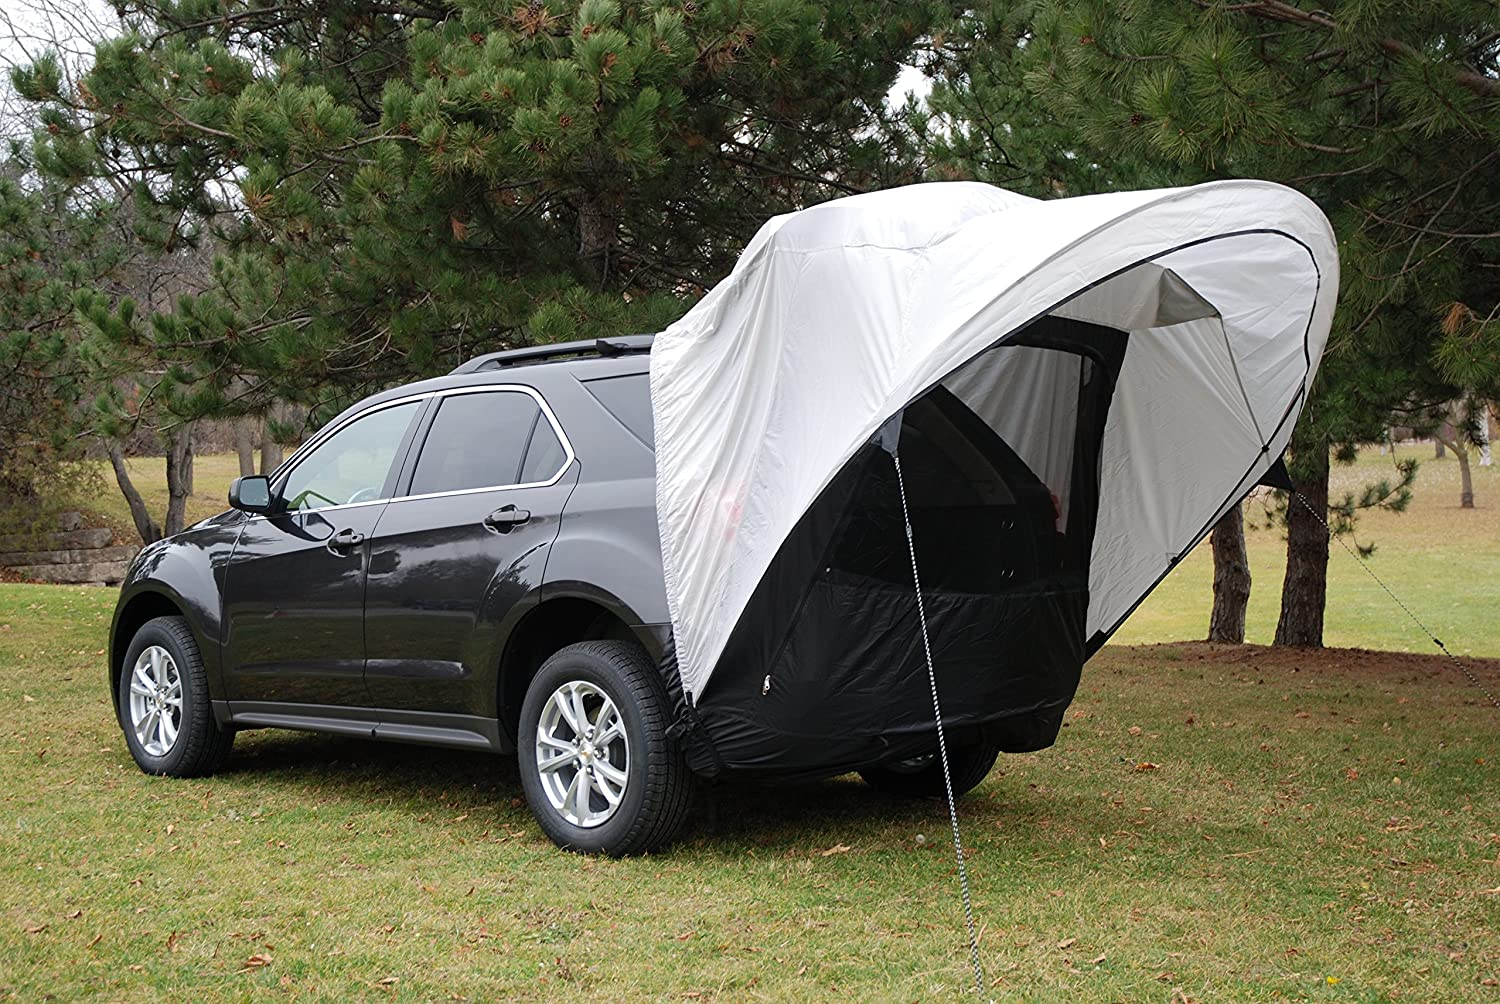 Amazon Napier Sportz Cove 61500 SUV Minivan Tent Sports Outdoors